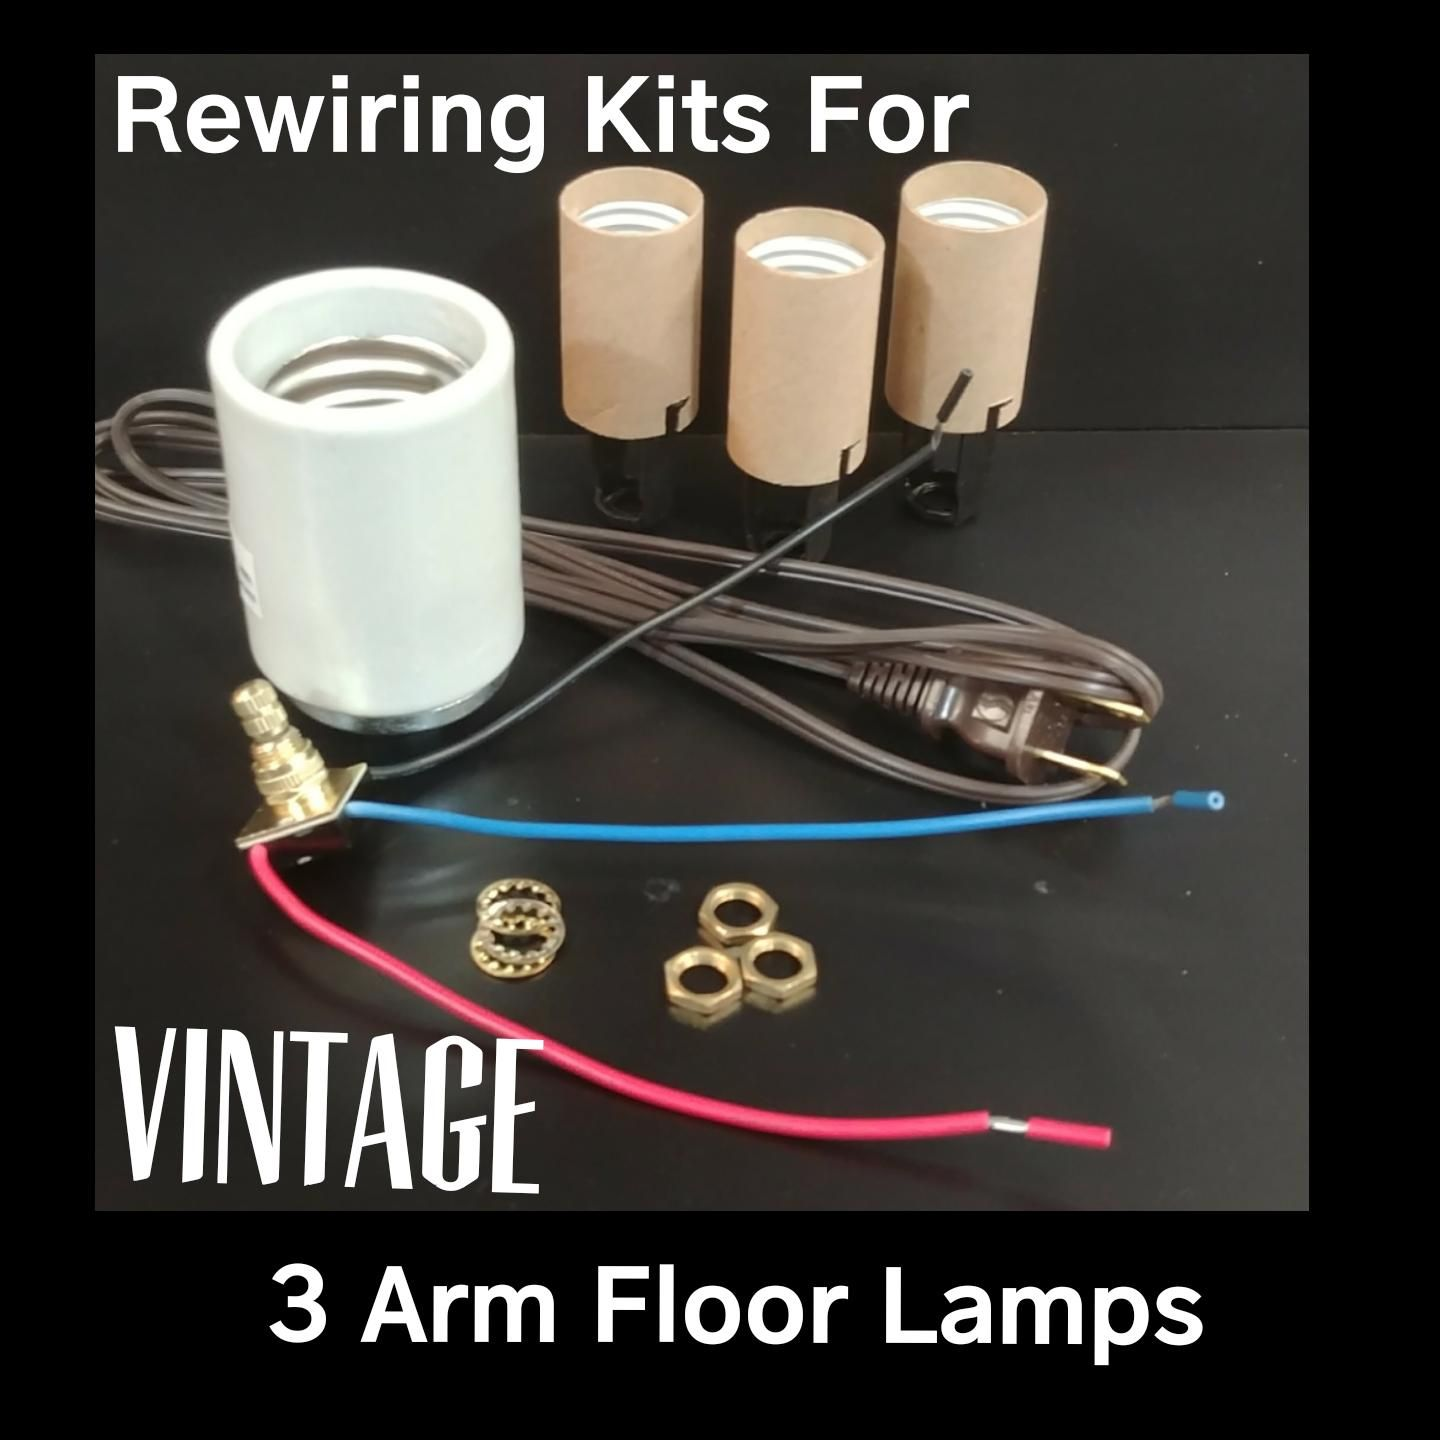 Lamp Rewiring Kits For Vintage 3 Arm Floor Lamps With Complete Diagrams And Instructions Arm Floor Lamp Floor Lamp Vintage Floor Lamp